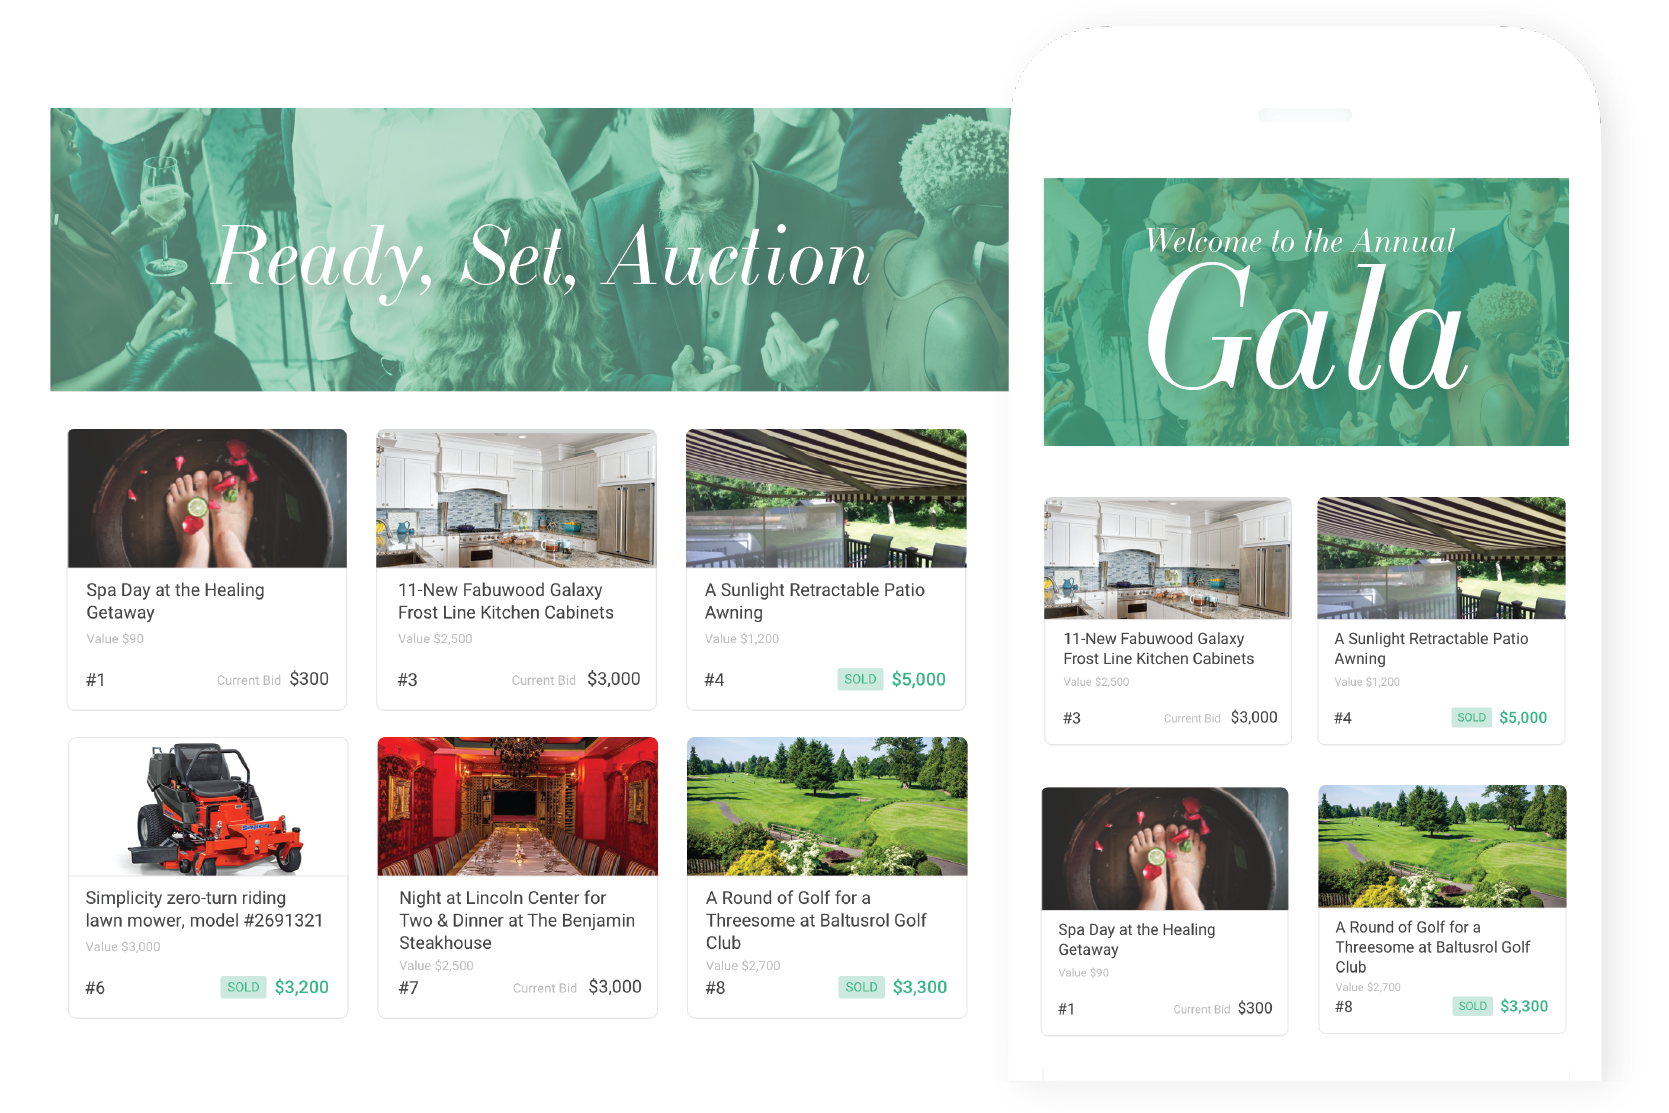 Build excitement - Get everyone excited and ready to start bidding in advance — showcase a sneak peek of your auction items with photos and starting bid amounts.